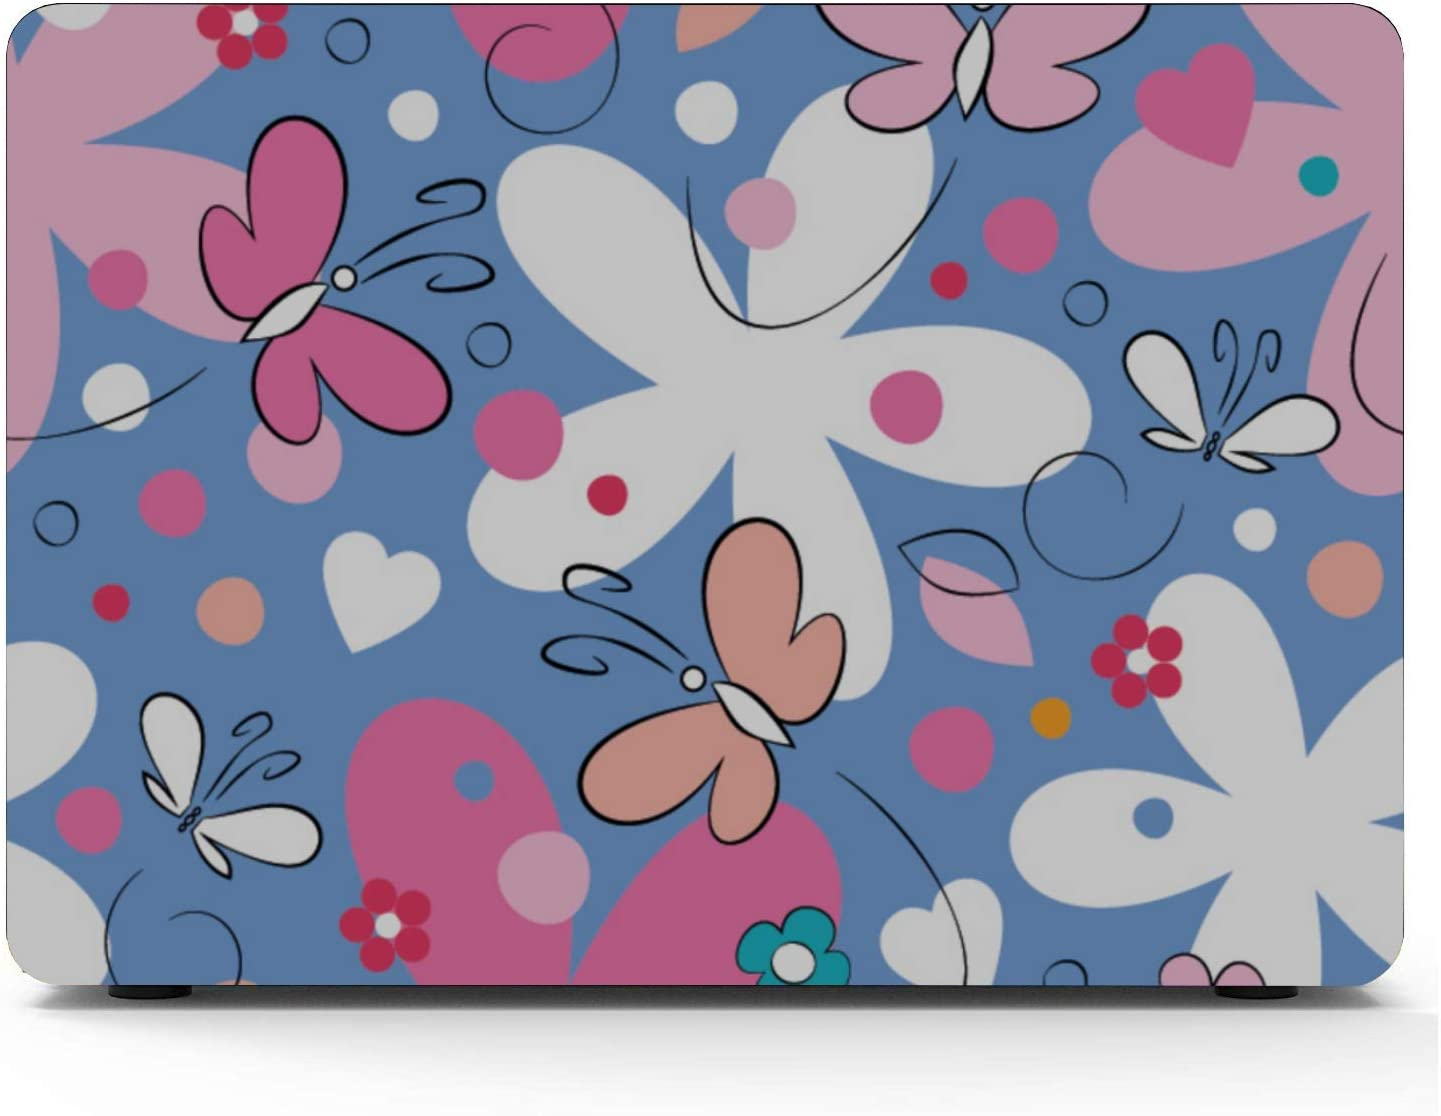 MacBook Pro Protective Case Simple Creative Fashion Painting Plastic Hard Shell Compatible Mac Air 11 Pro 13 15 Mac Book Pro Covers Protection for MacBook 2016-2019 Version